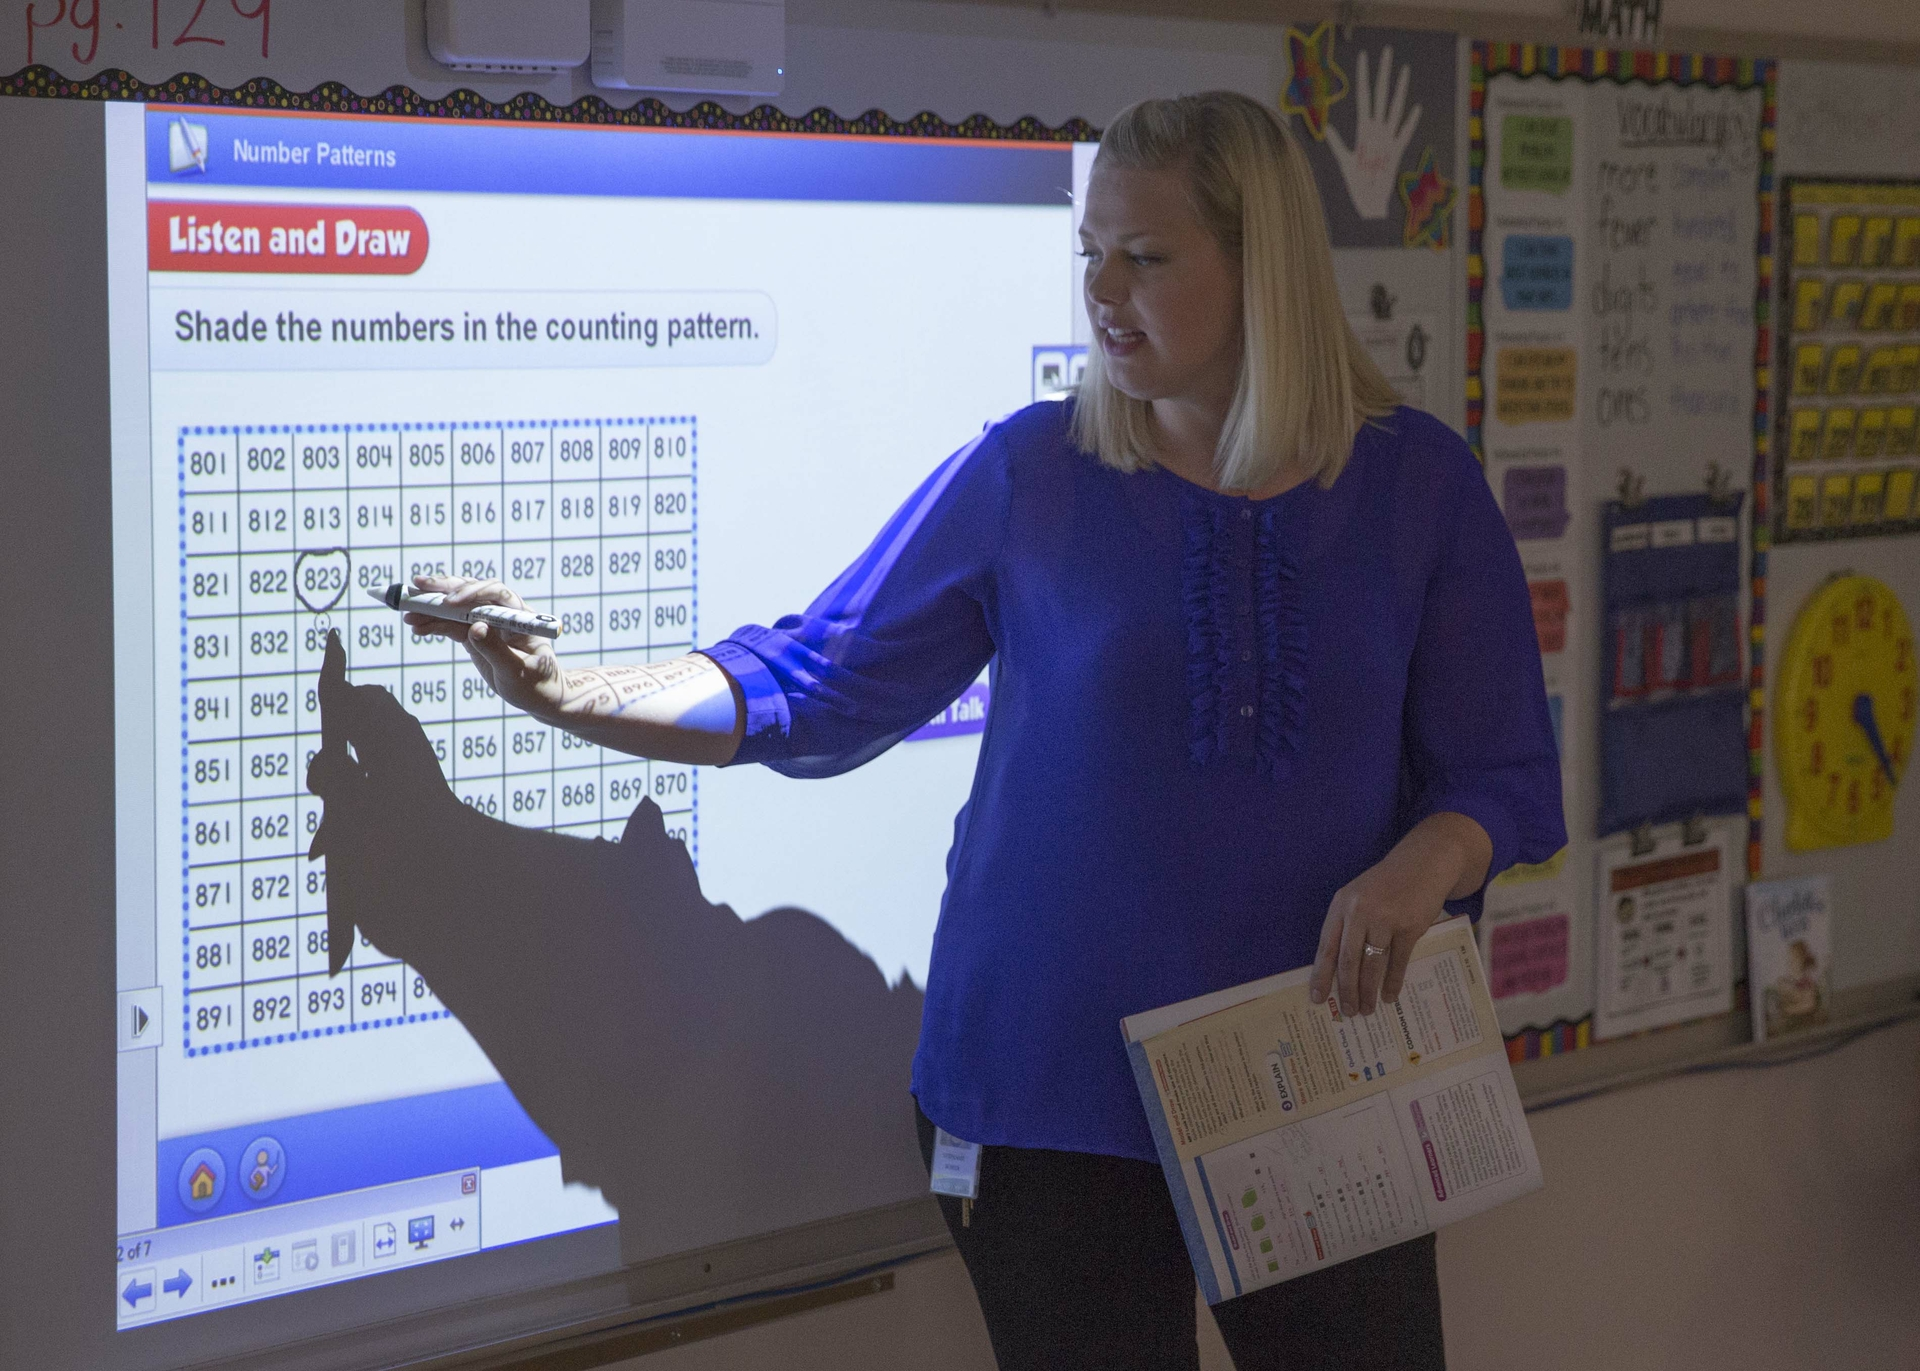 Des Moines Teacher Using BrightLink Pro